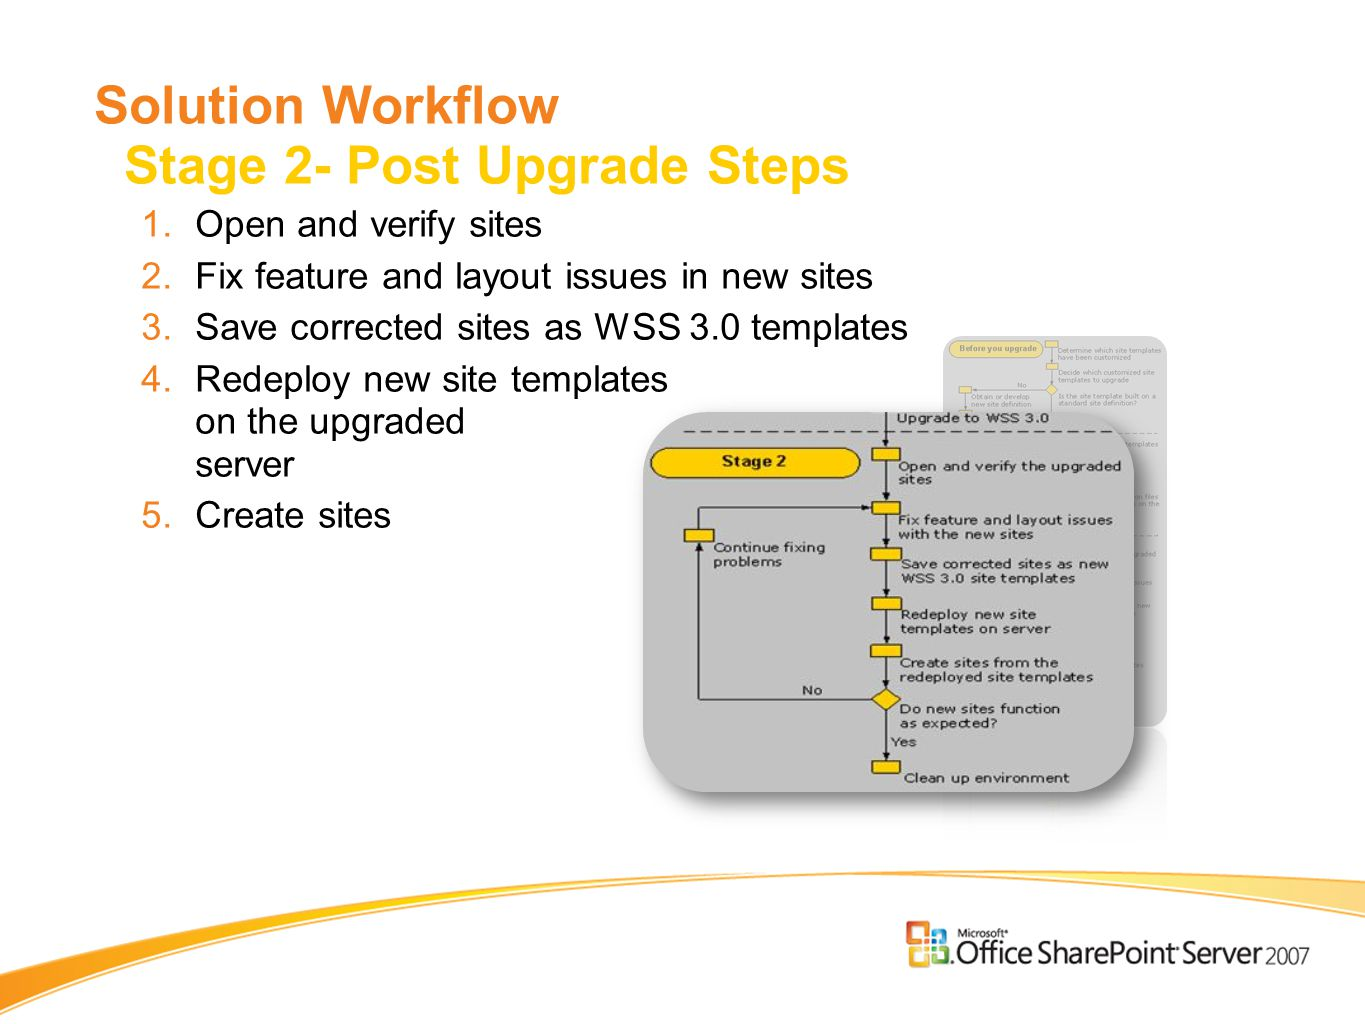 Solution Workflow Stage 2- Post Upgrade Steps 1.Open and verify sites 2.Fix feature and layout issues in new sites 3.Save corrected sites as WSS 3.0 templates 4.Redeploy new site templates on the upgraded server 5.Create sites